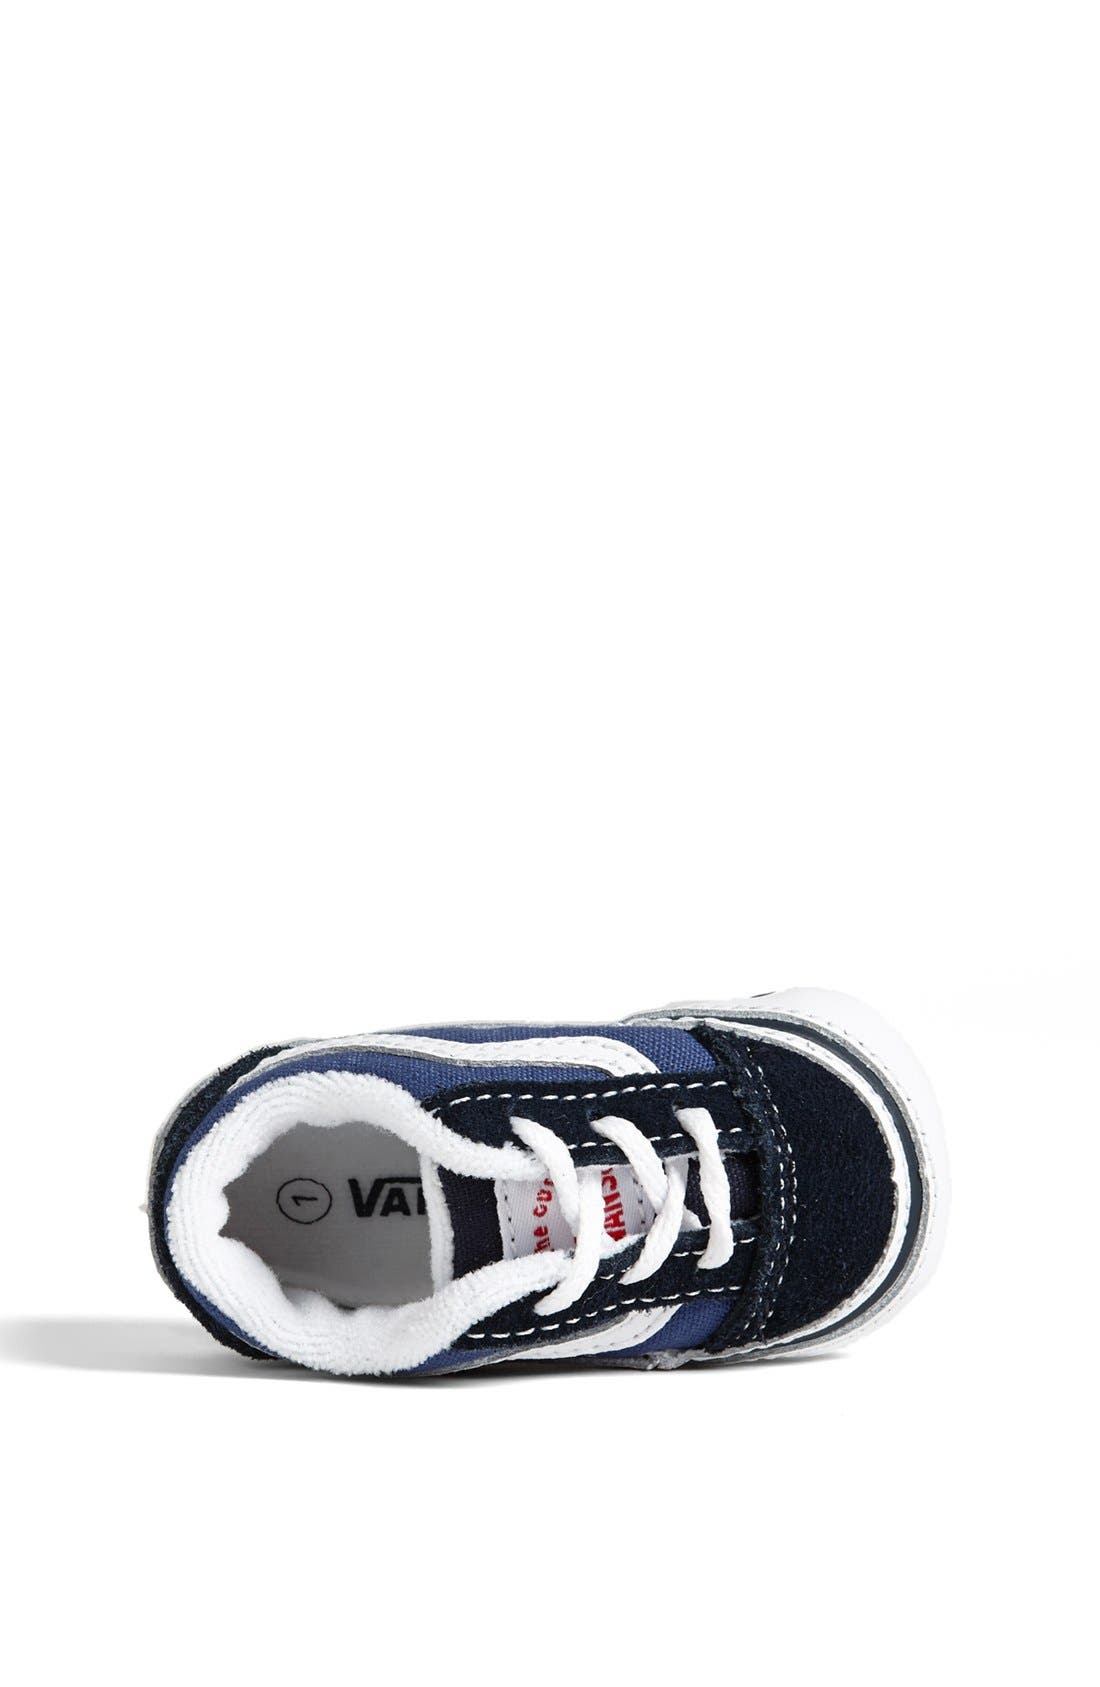 Alternate Image 3  - Vans 'Old Skool' Crib Shoe (Baby)